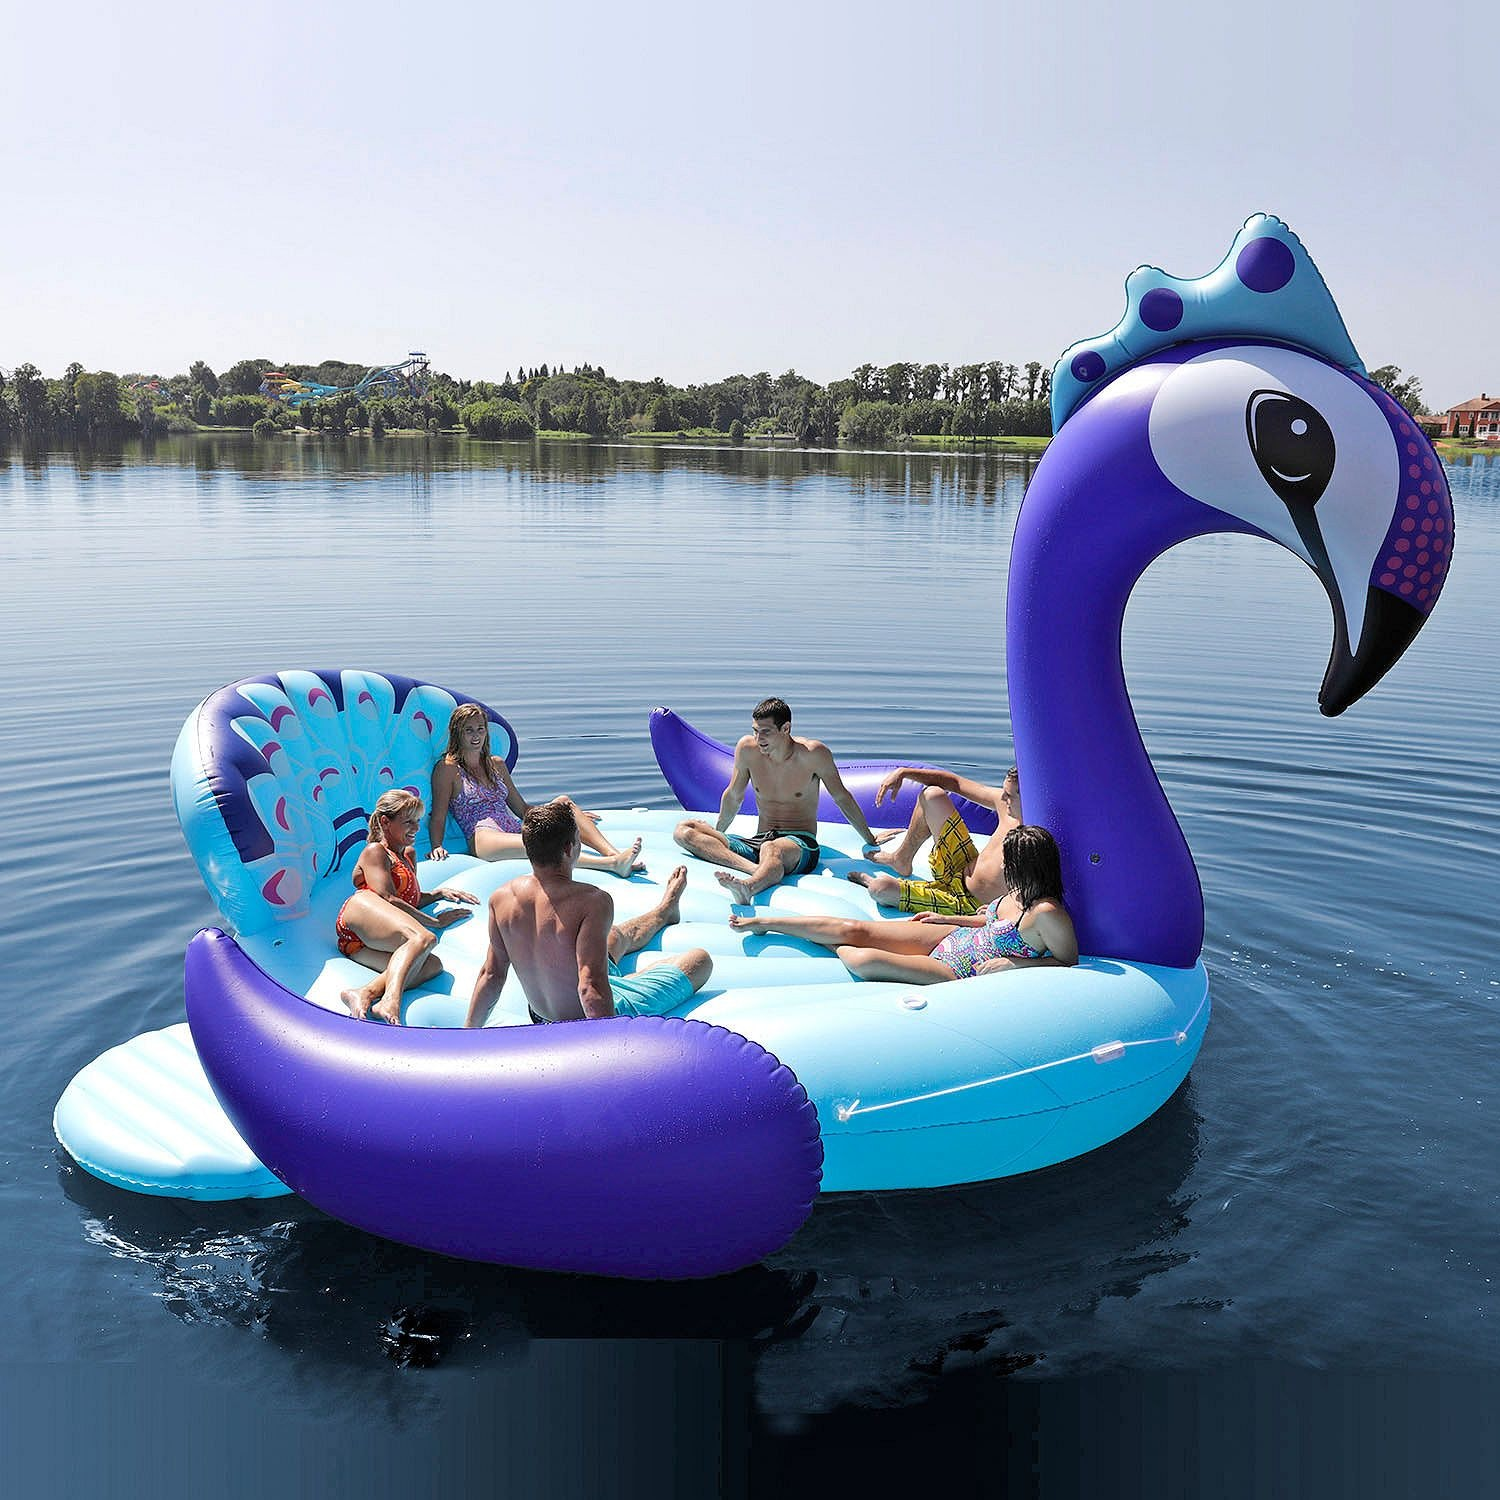 Sams Club Party Bird Island Pool Floats Make It So Easy To Enjoy Summer With Your BFFs